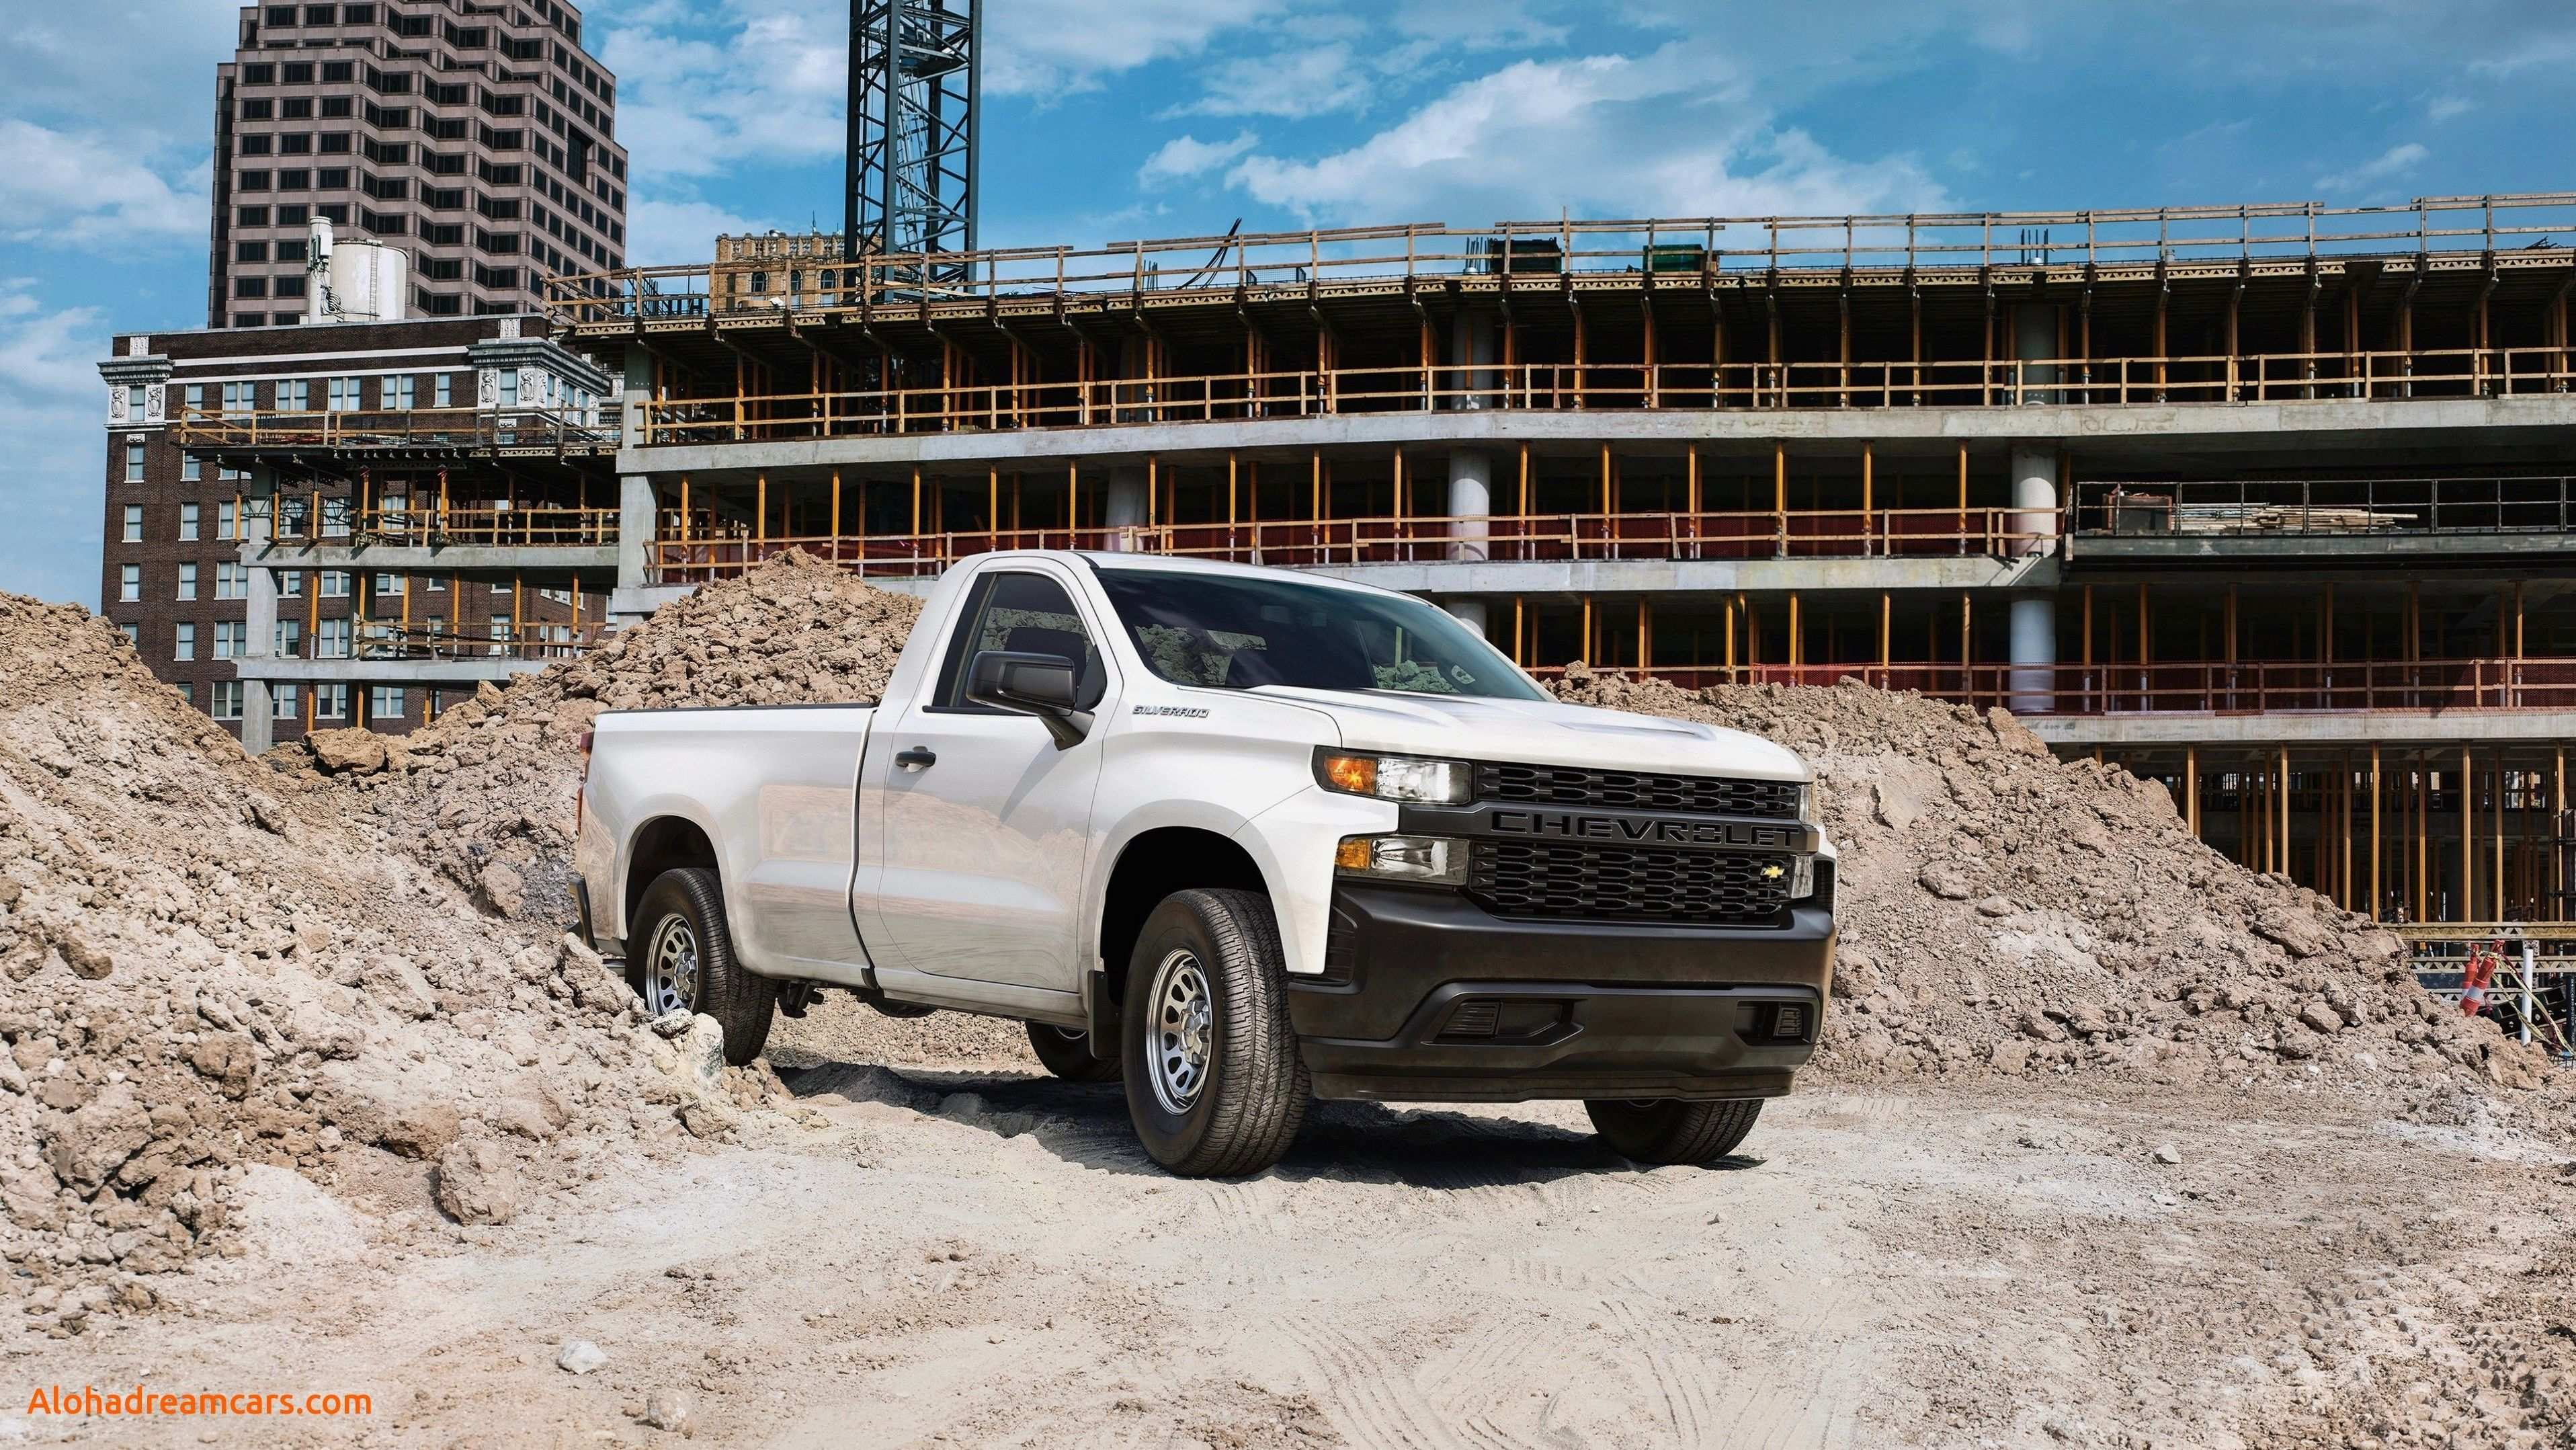 80 New New Gmc 2019 Jeep Performance And New Engine New Review for New Gmc 2019 Jeep Performance And New Engine